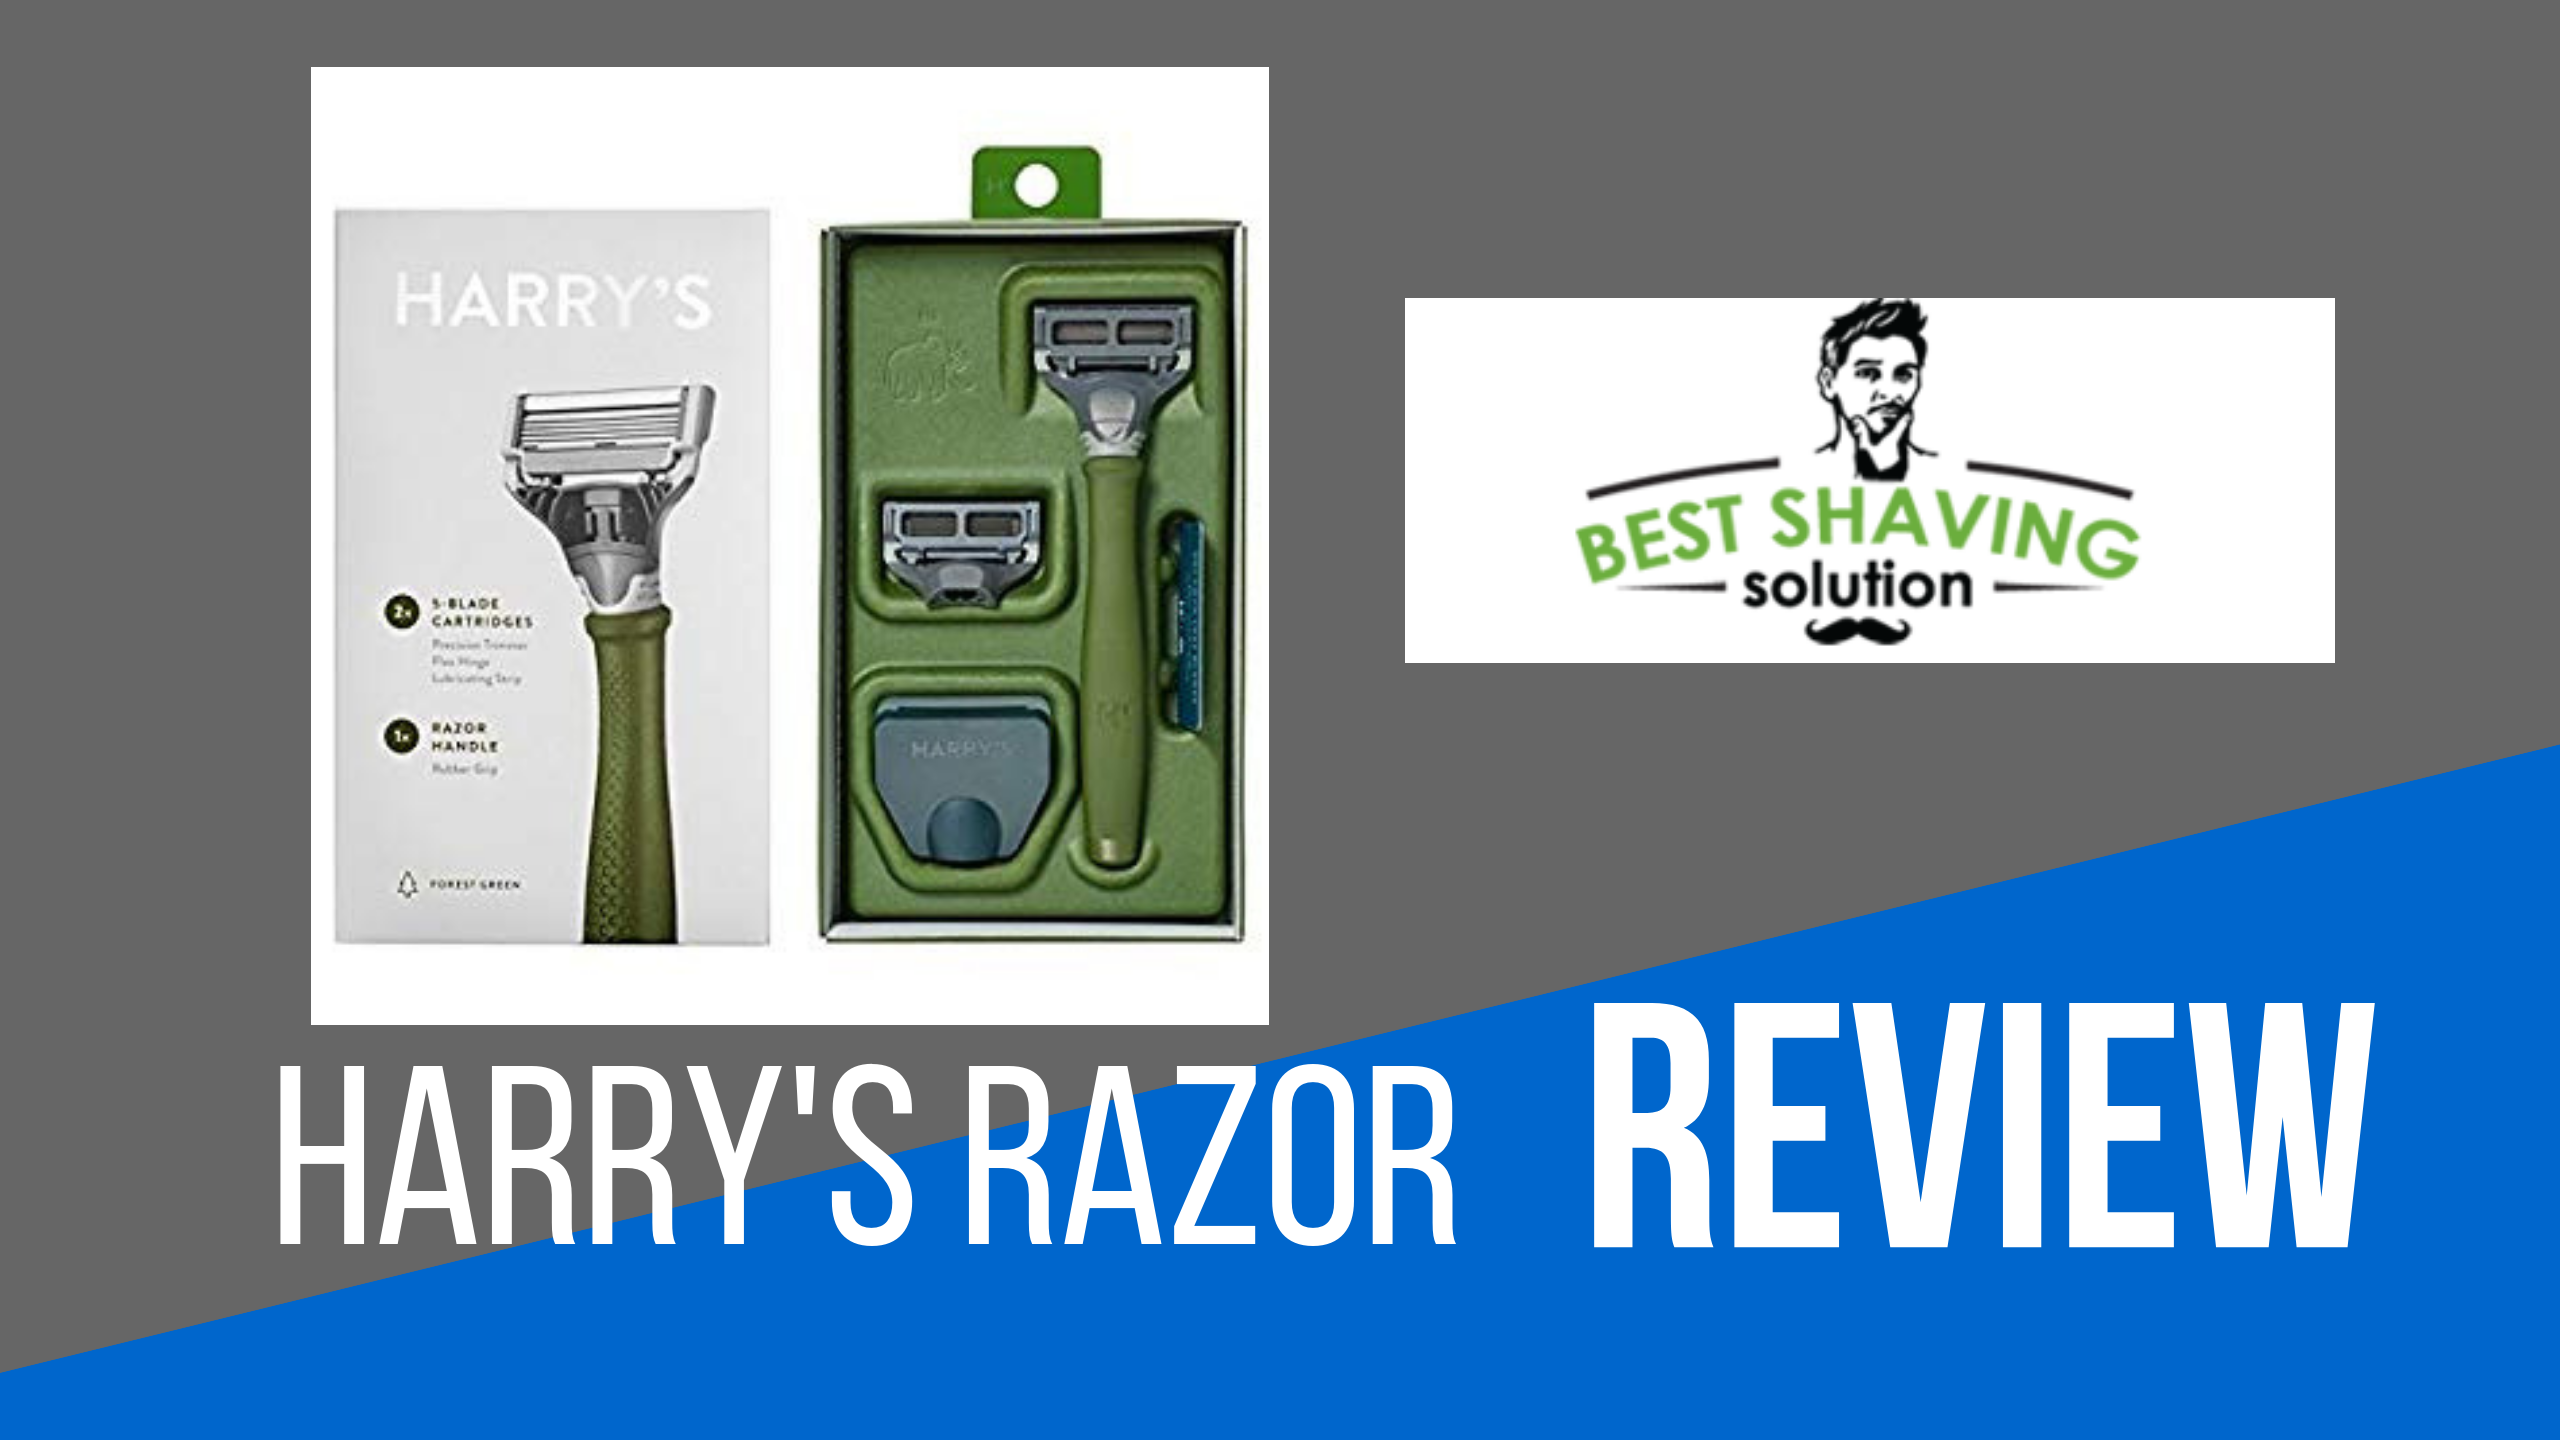 harry's razor review features 2 German-engineered blade cartridges with a flex hinge and lubricating strip